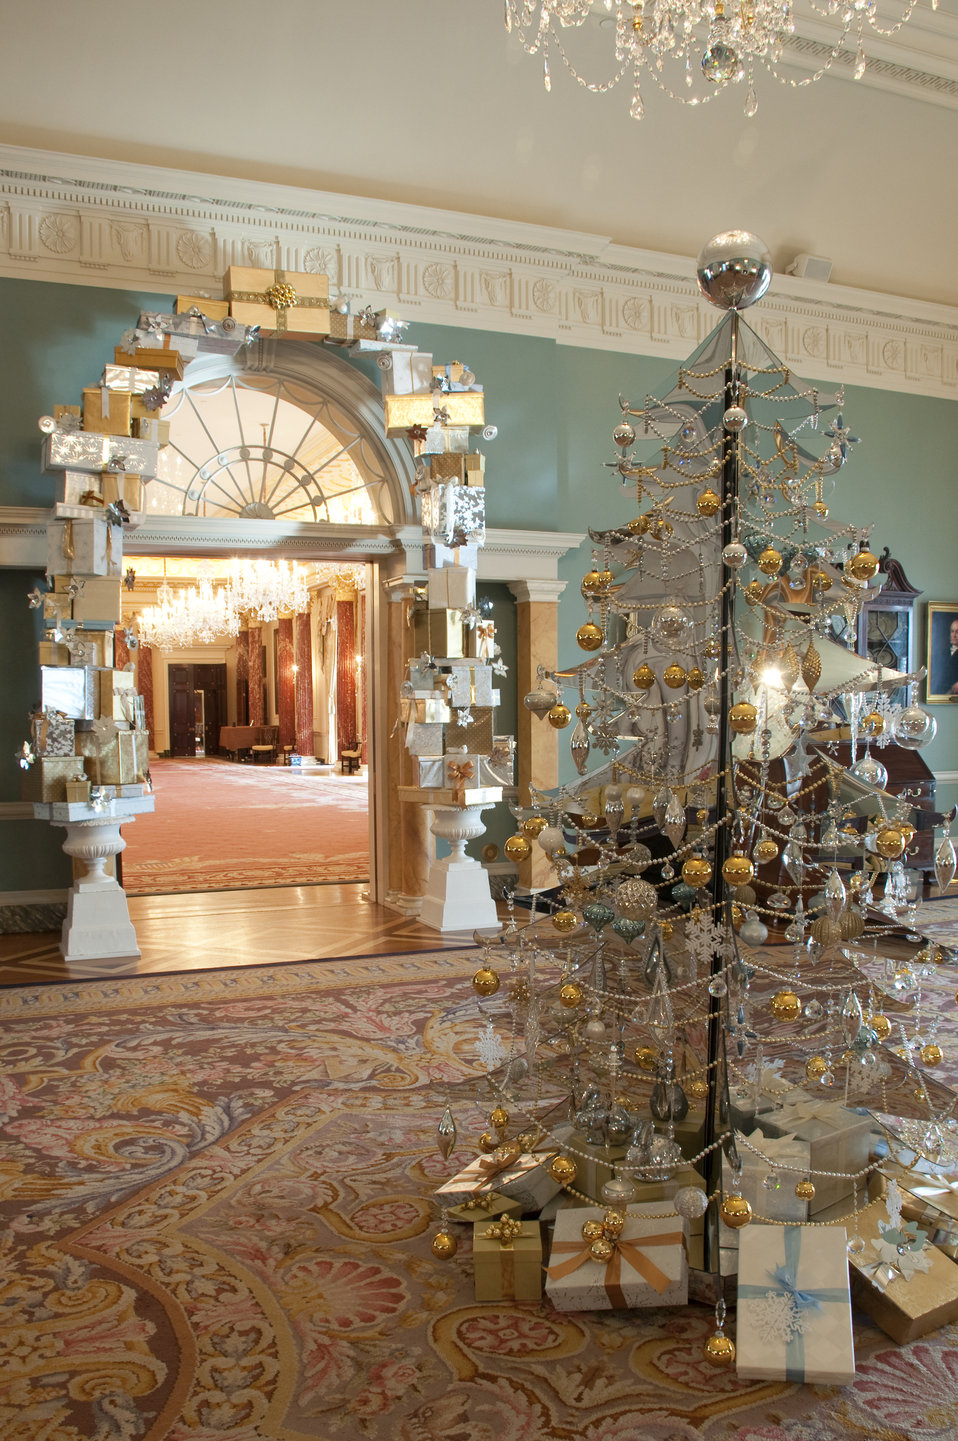 The U.S. Department of State Partners With Time Inc. and InStyle To Decorate the Thomas Jefferson State Reception Room